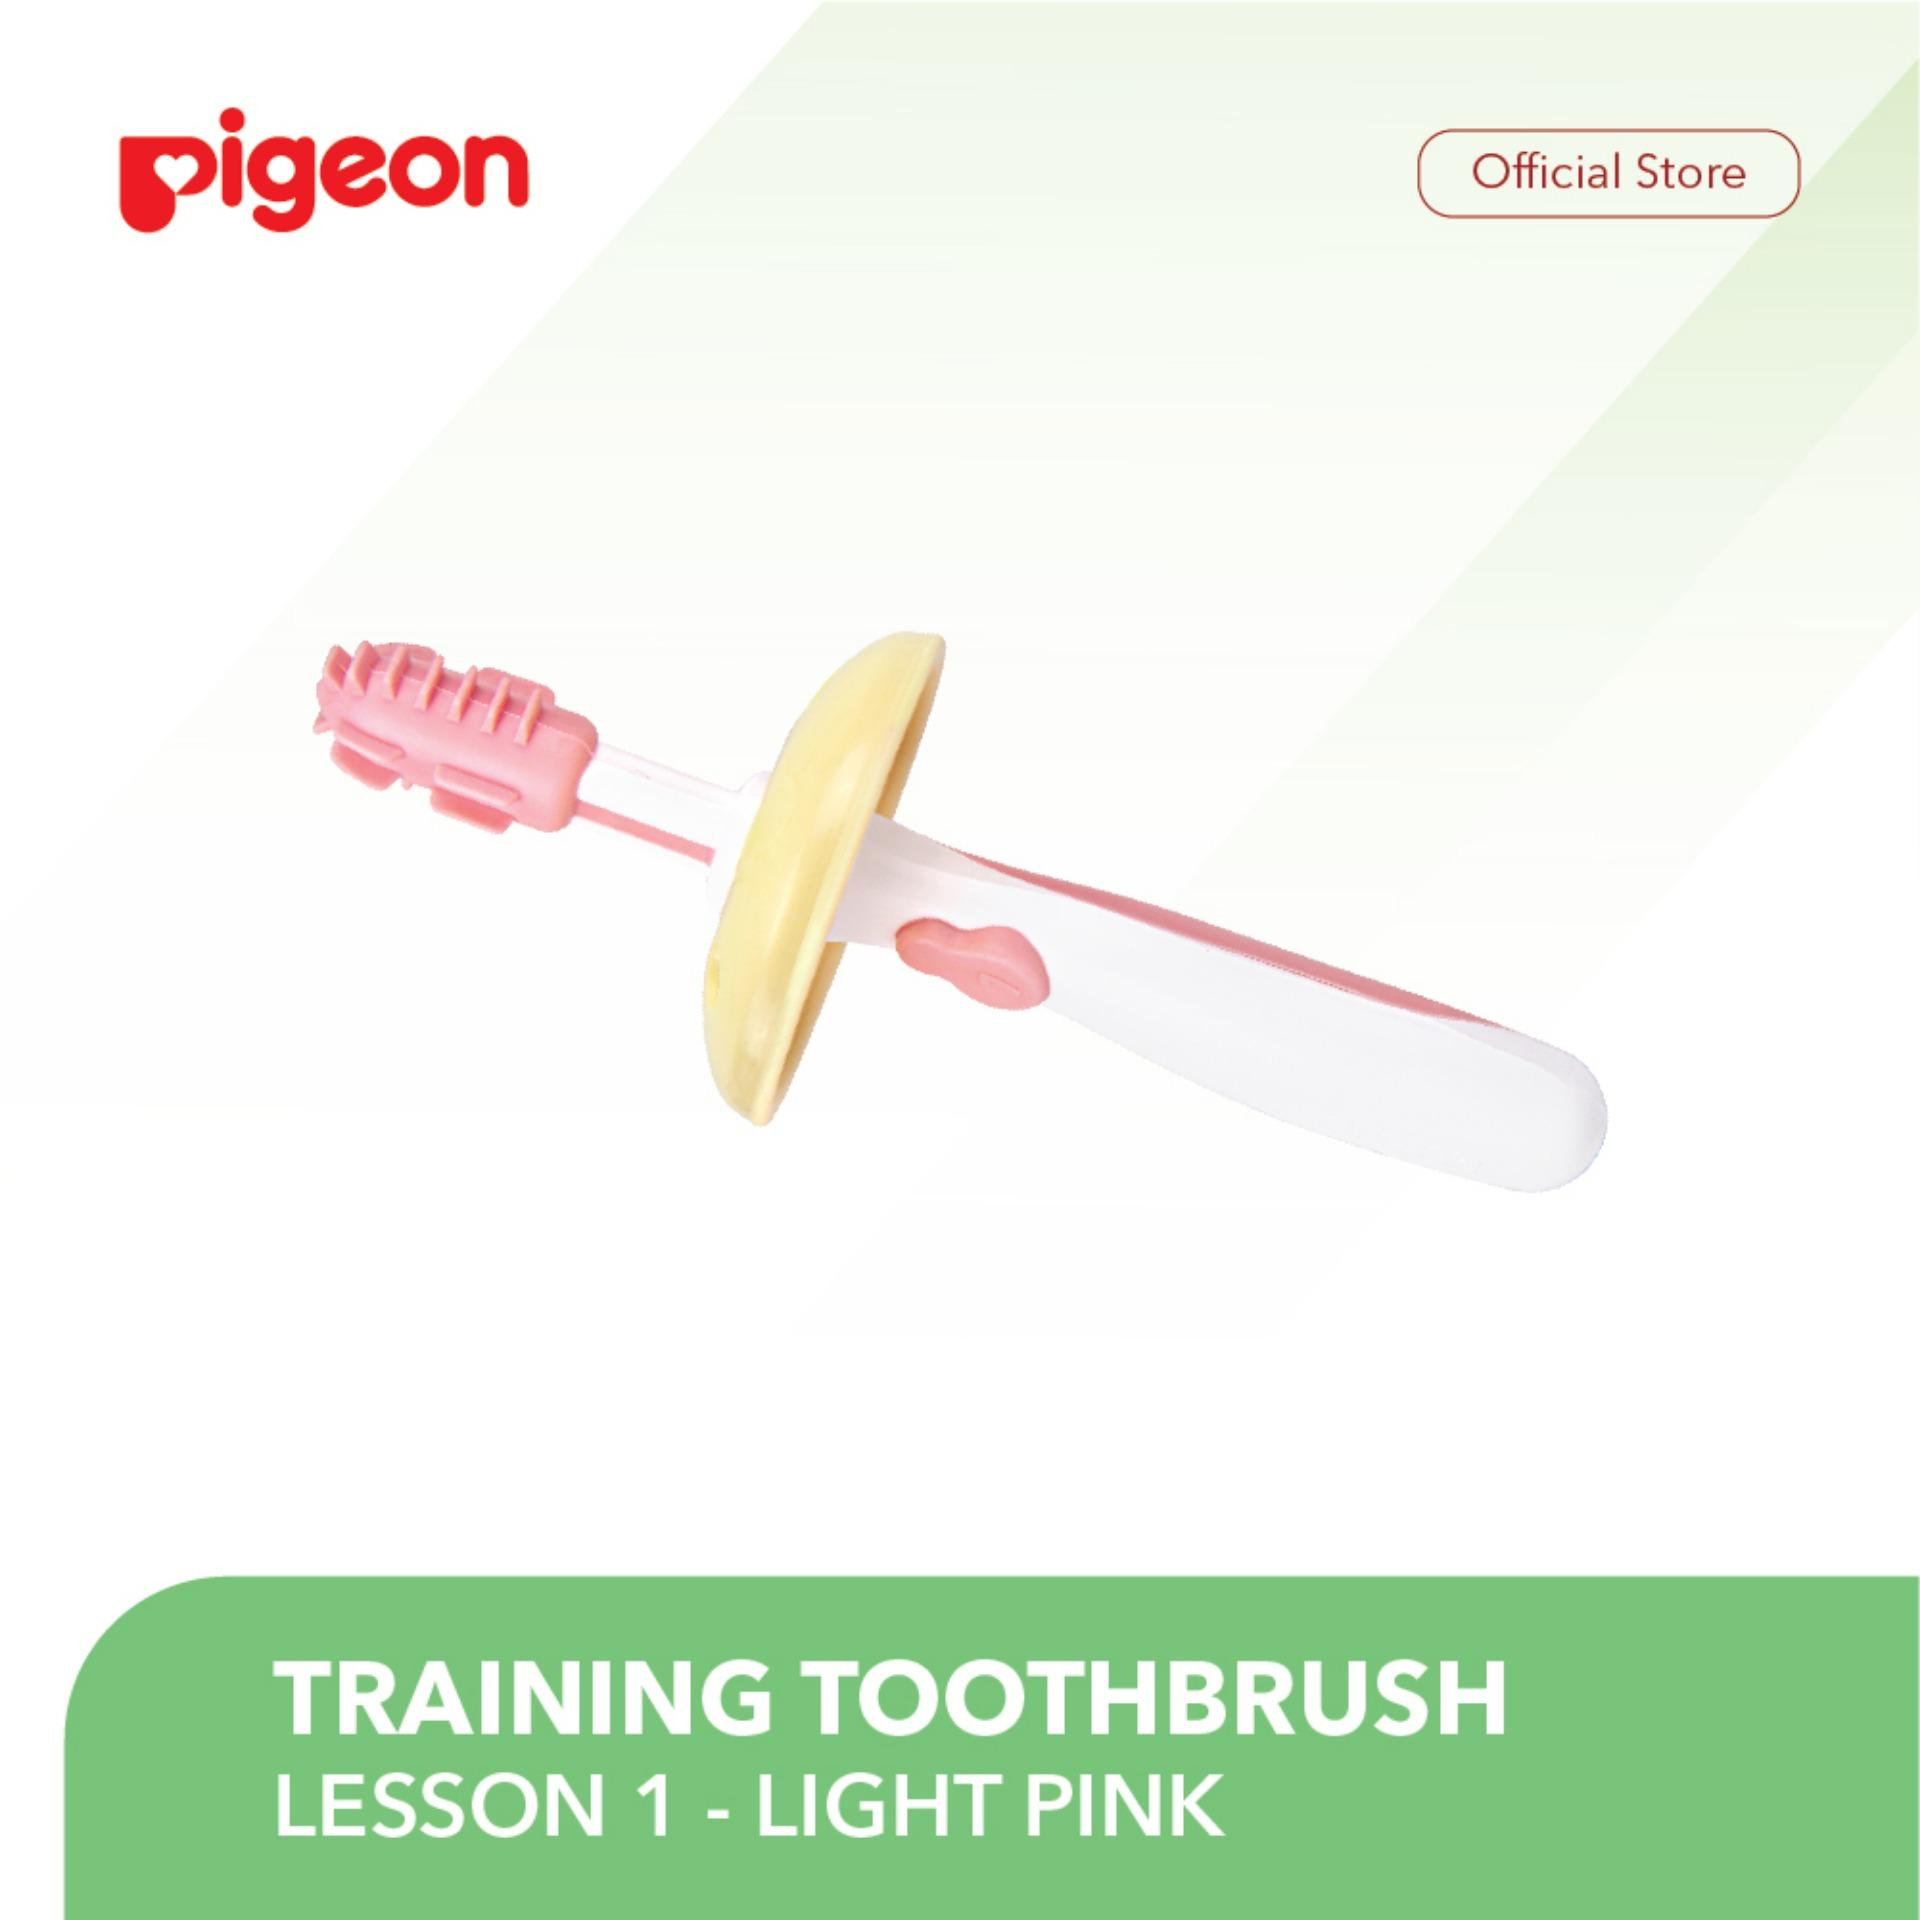 Pigeon Training Toothbrush Lesson 1 - Light Pink By Pigeon Indonesia.